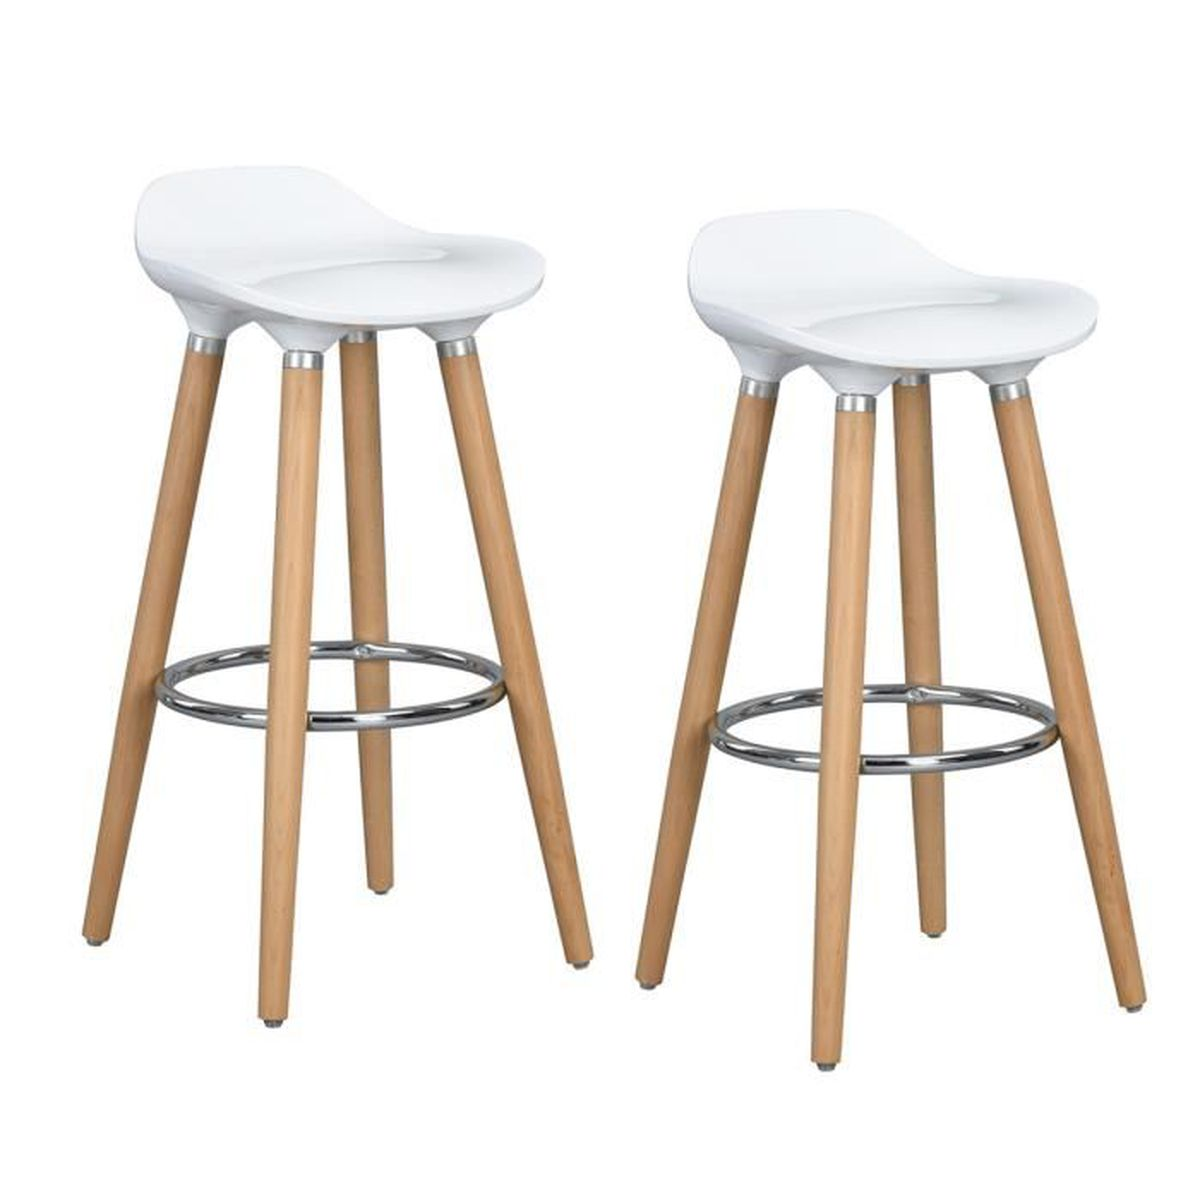 Furniturer Lot De 2 Tabourets De Bar Bistrot Chaises De